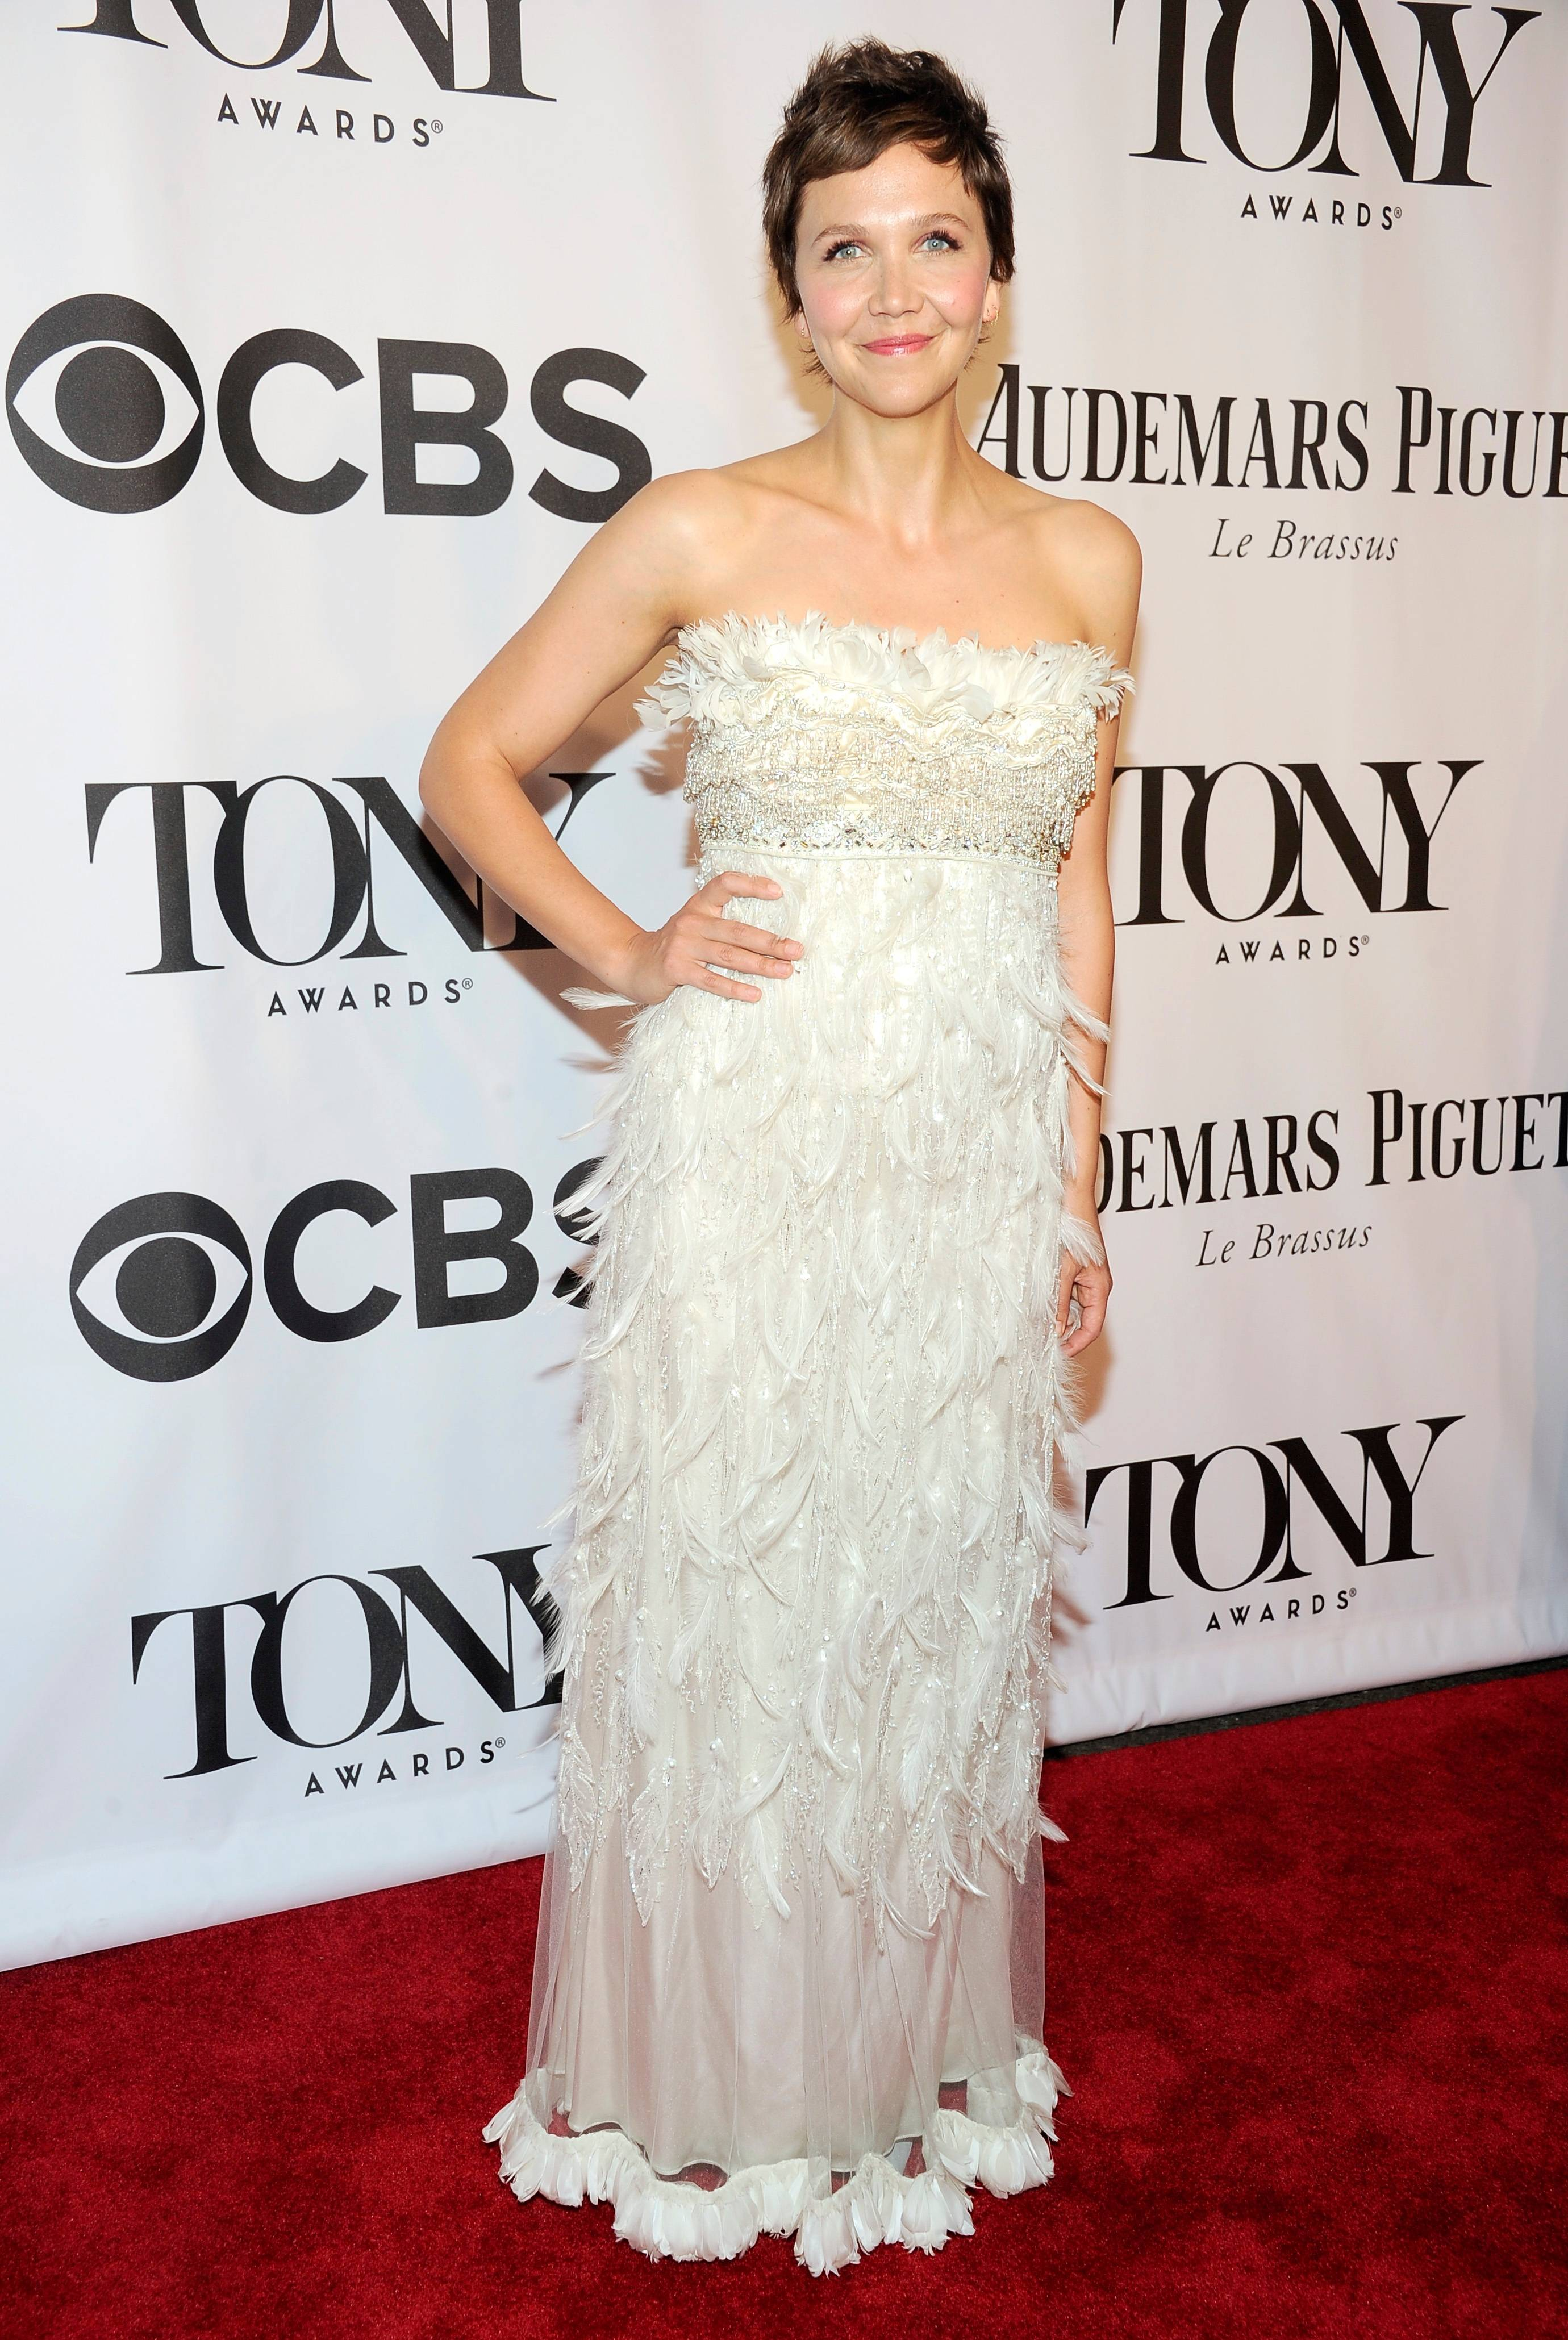 Maggie Gyllenhaal arrives at the 68th annual Tony Awards at Radio City Music Hall on Sunday.